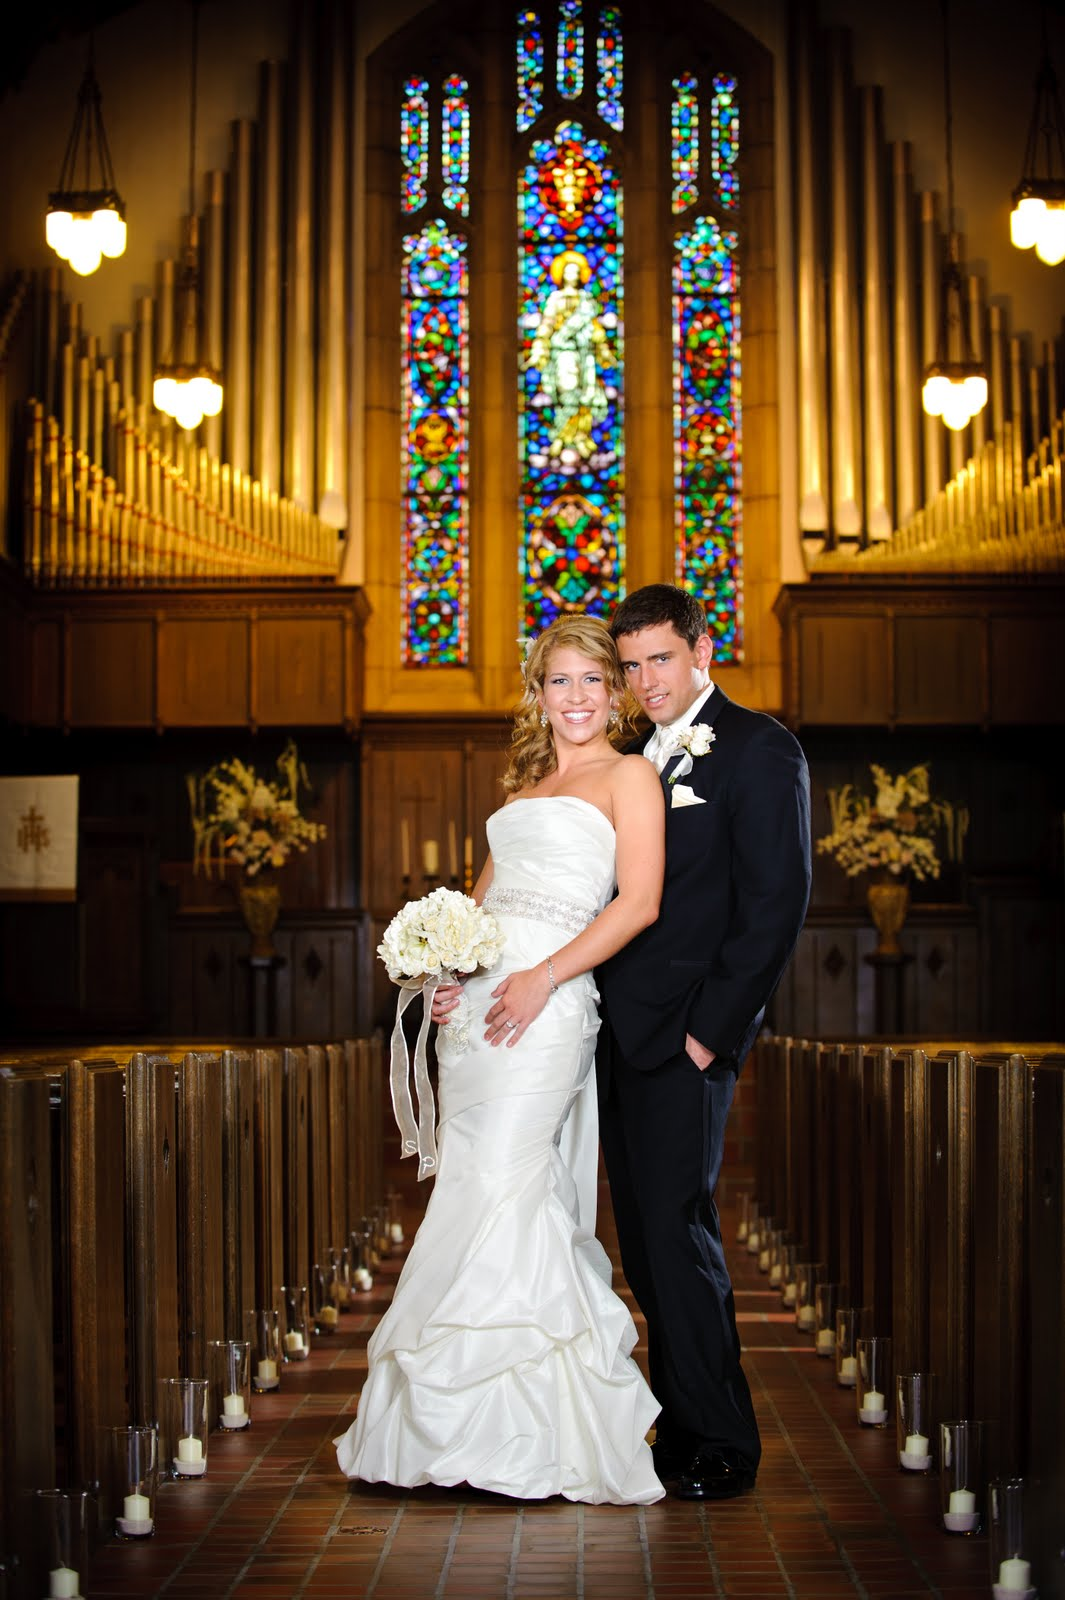 Cable Photography & Video: Stacey Smith & Clint Pollock - Wedding ...